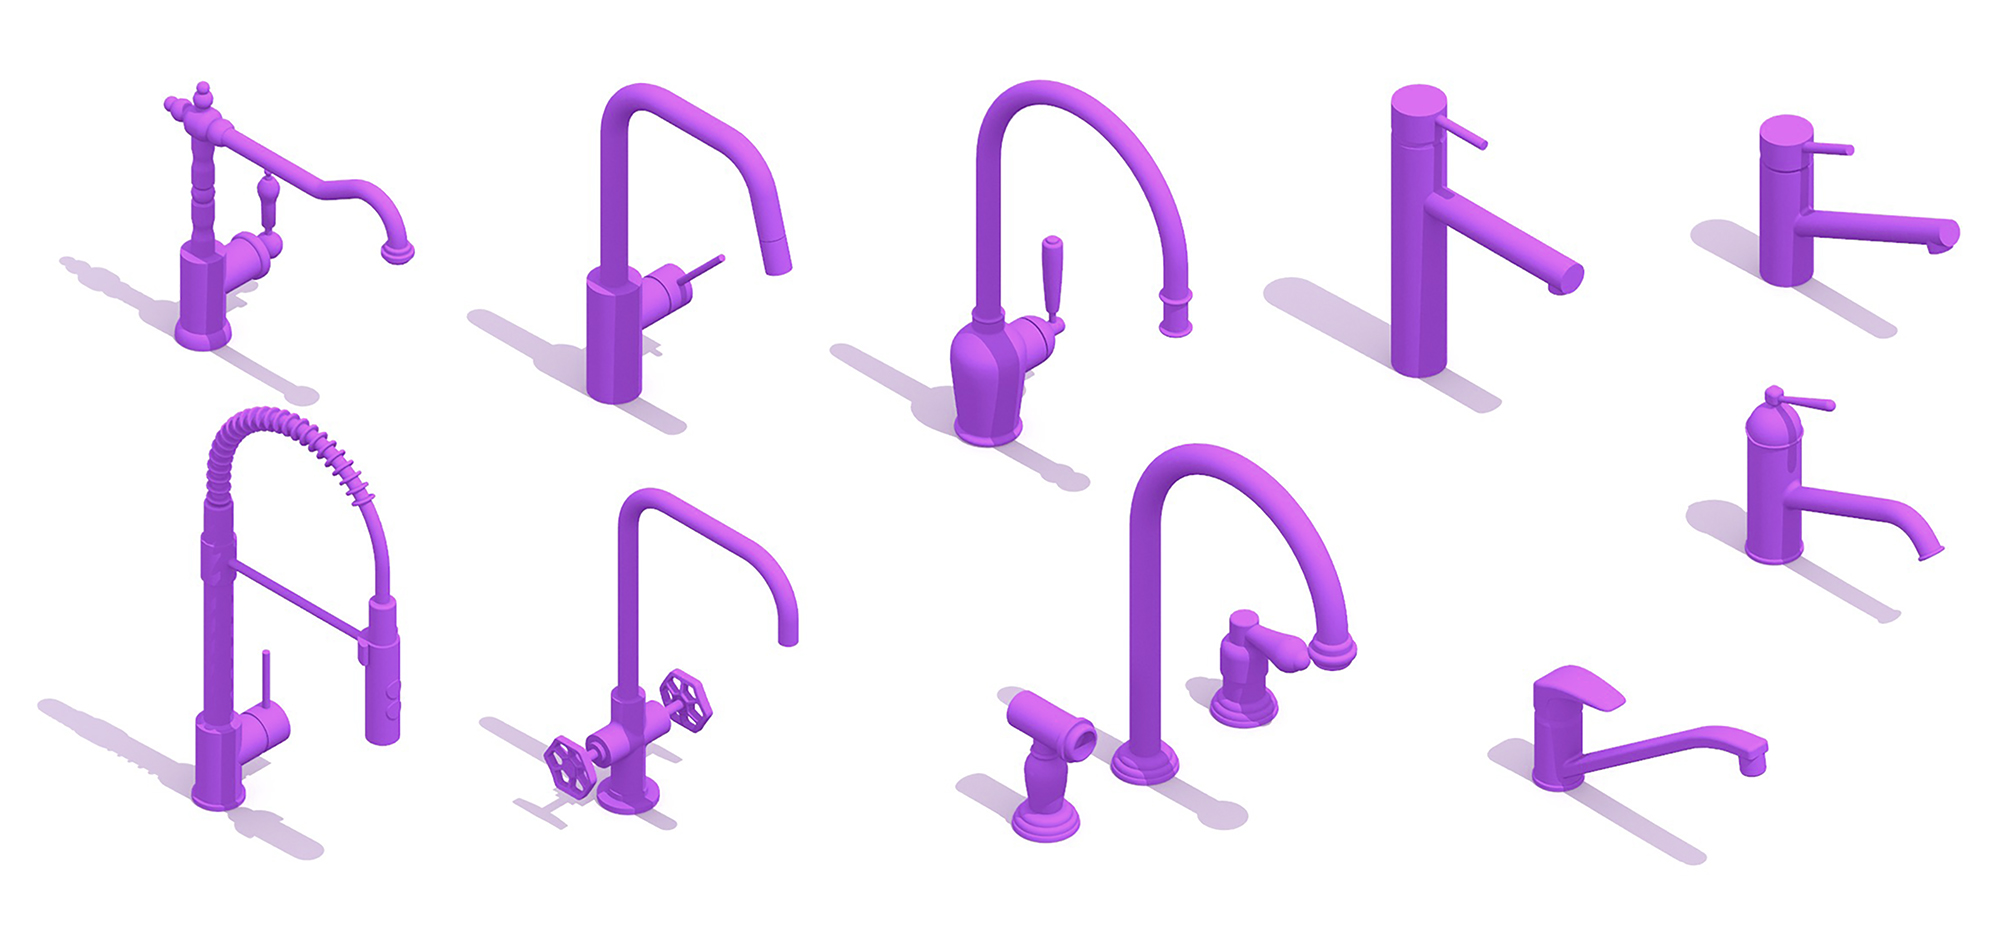 Collection of 3D Kitchen Faucets with assorted designs, sizes, shapes and functions